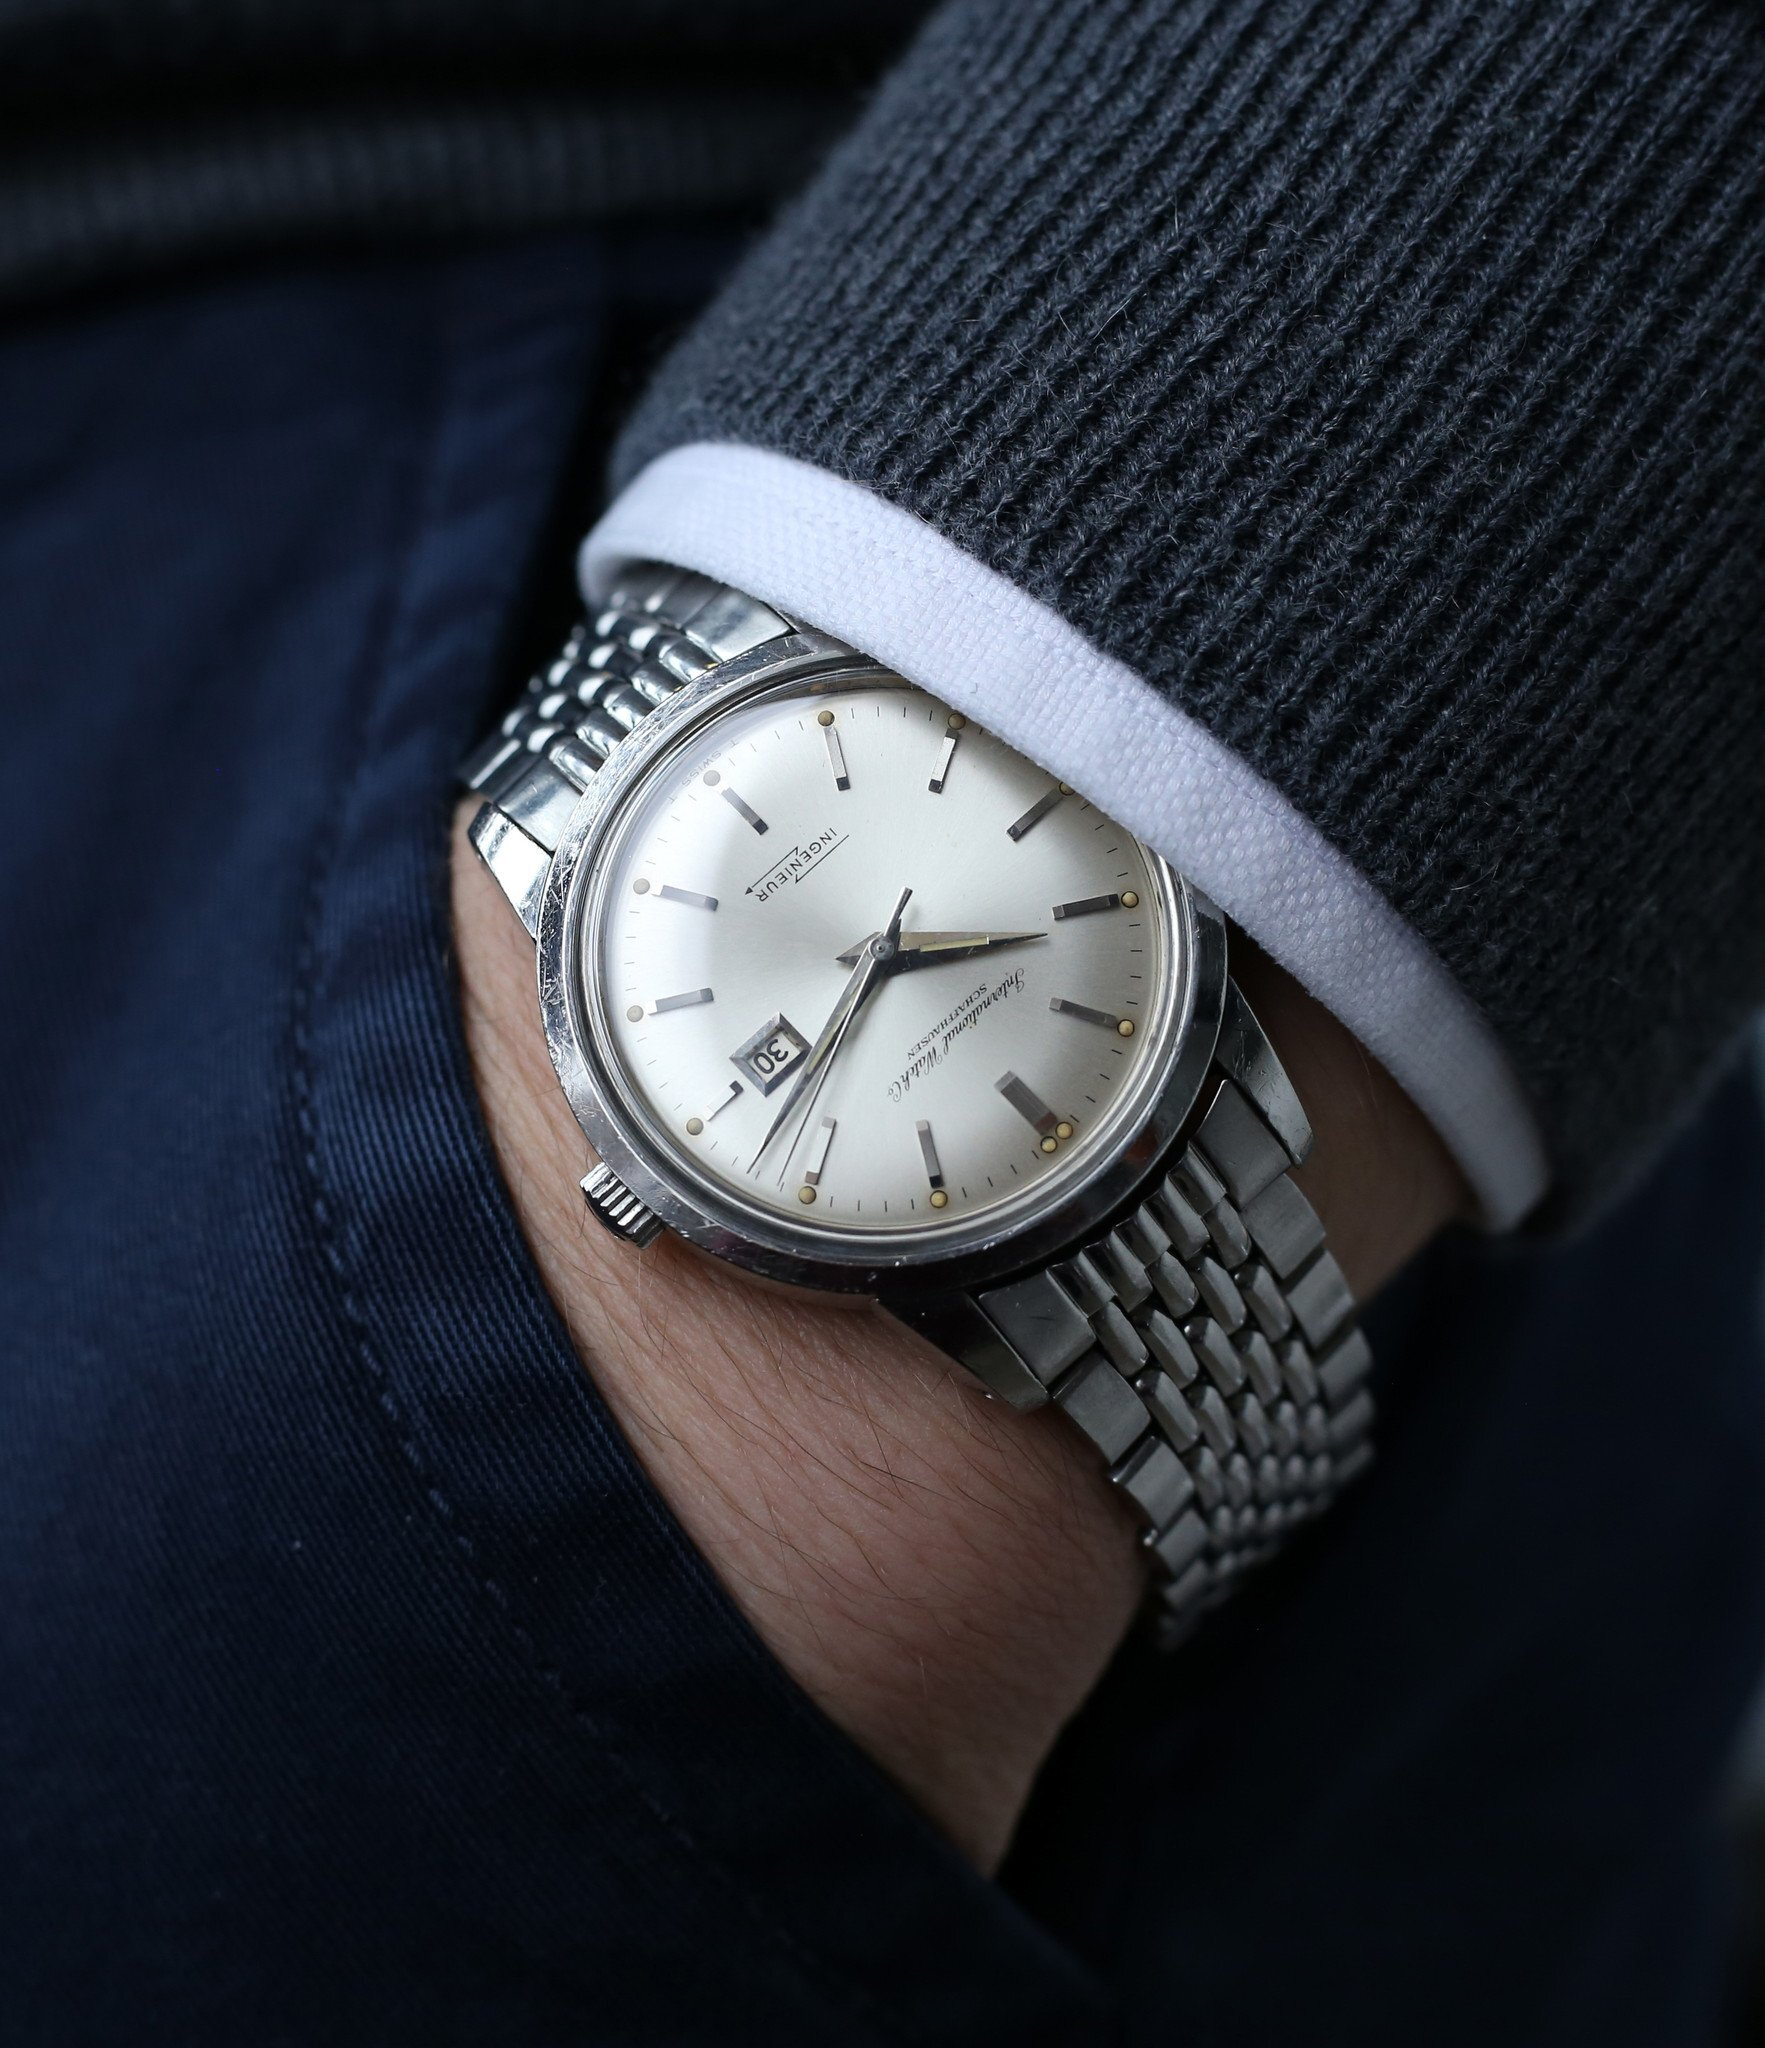 IWC_Ingenieur_666AD_steel_vintage_watch_at_A_Collected_Man23.